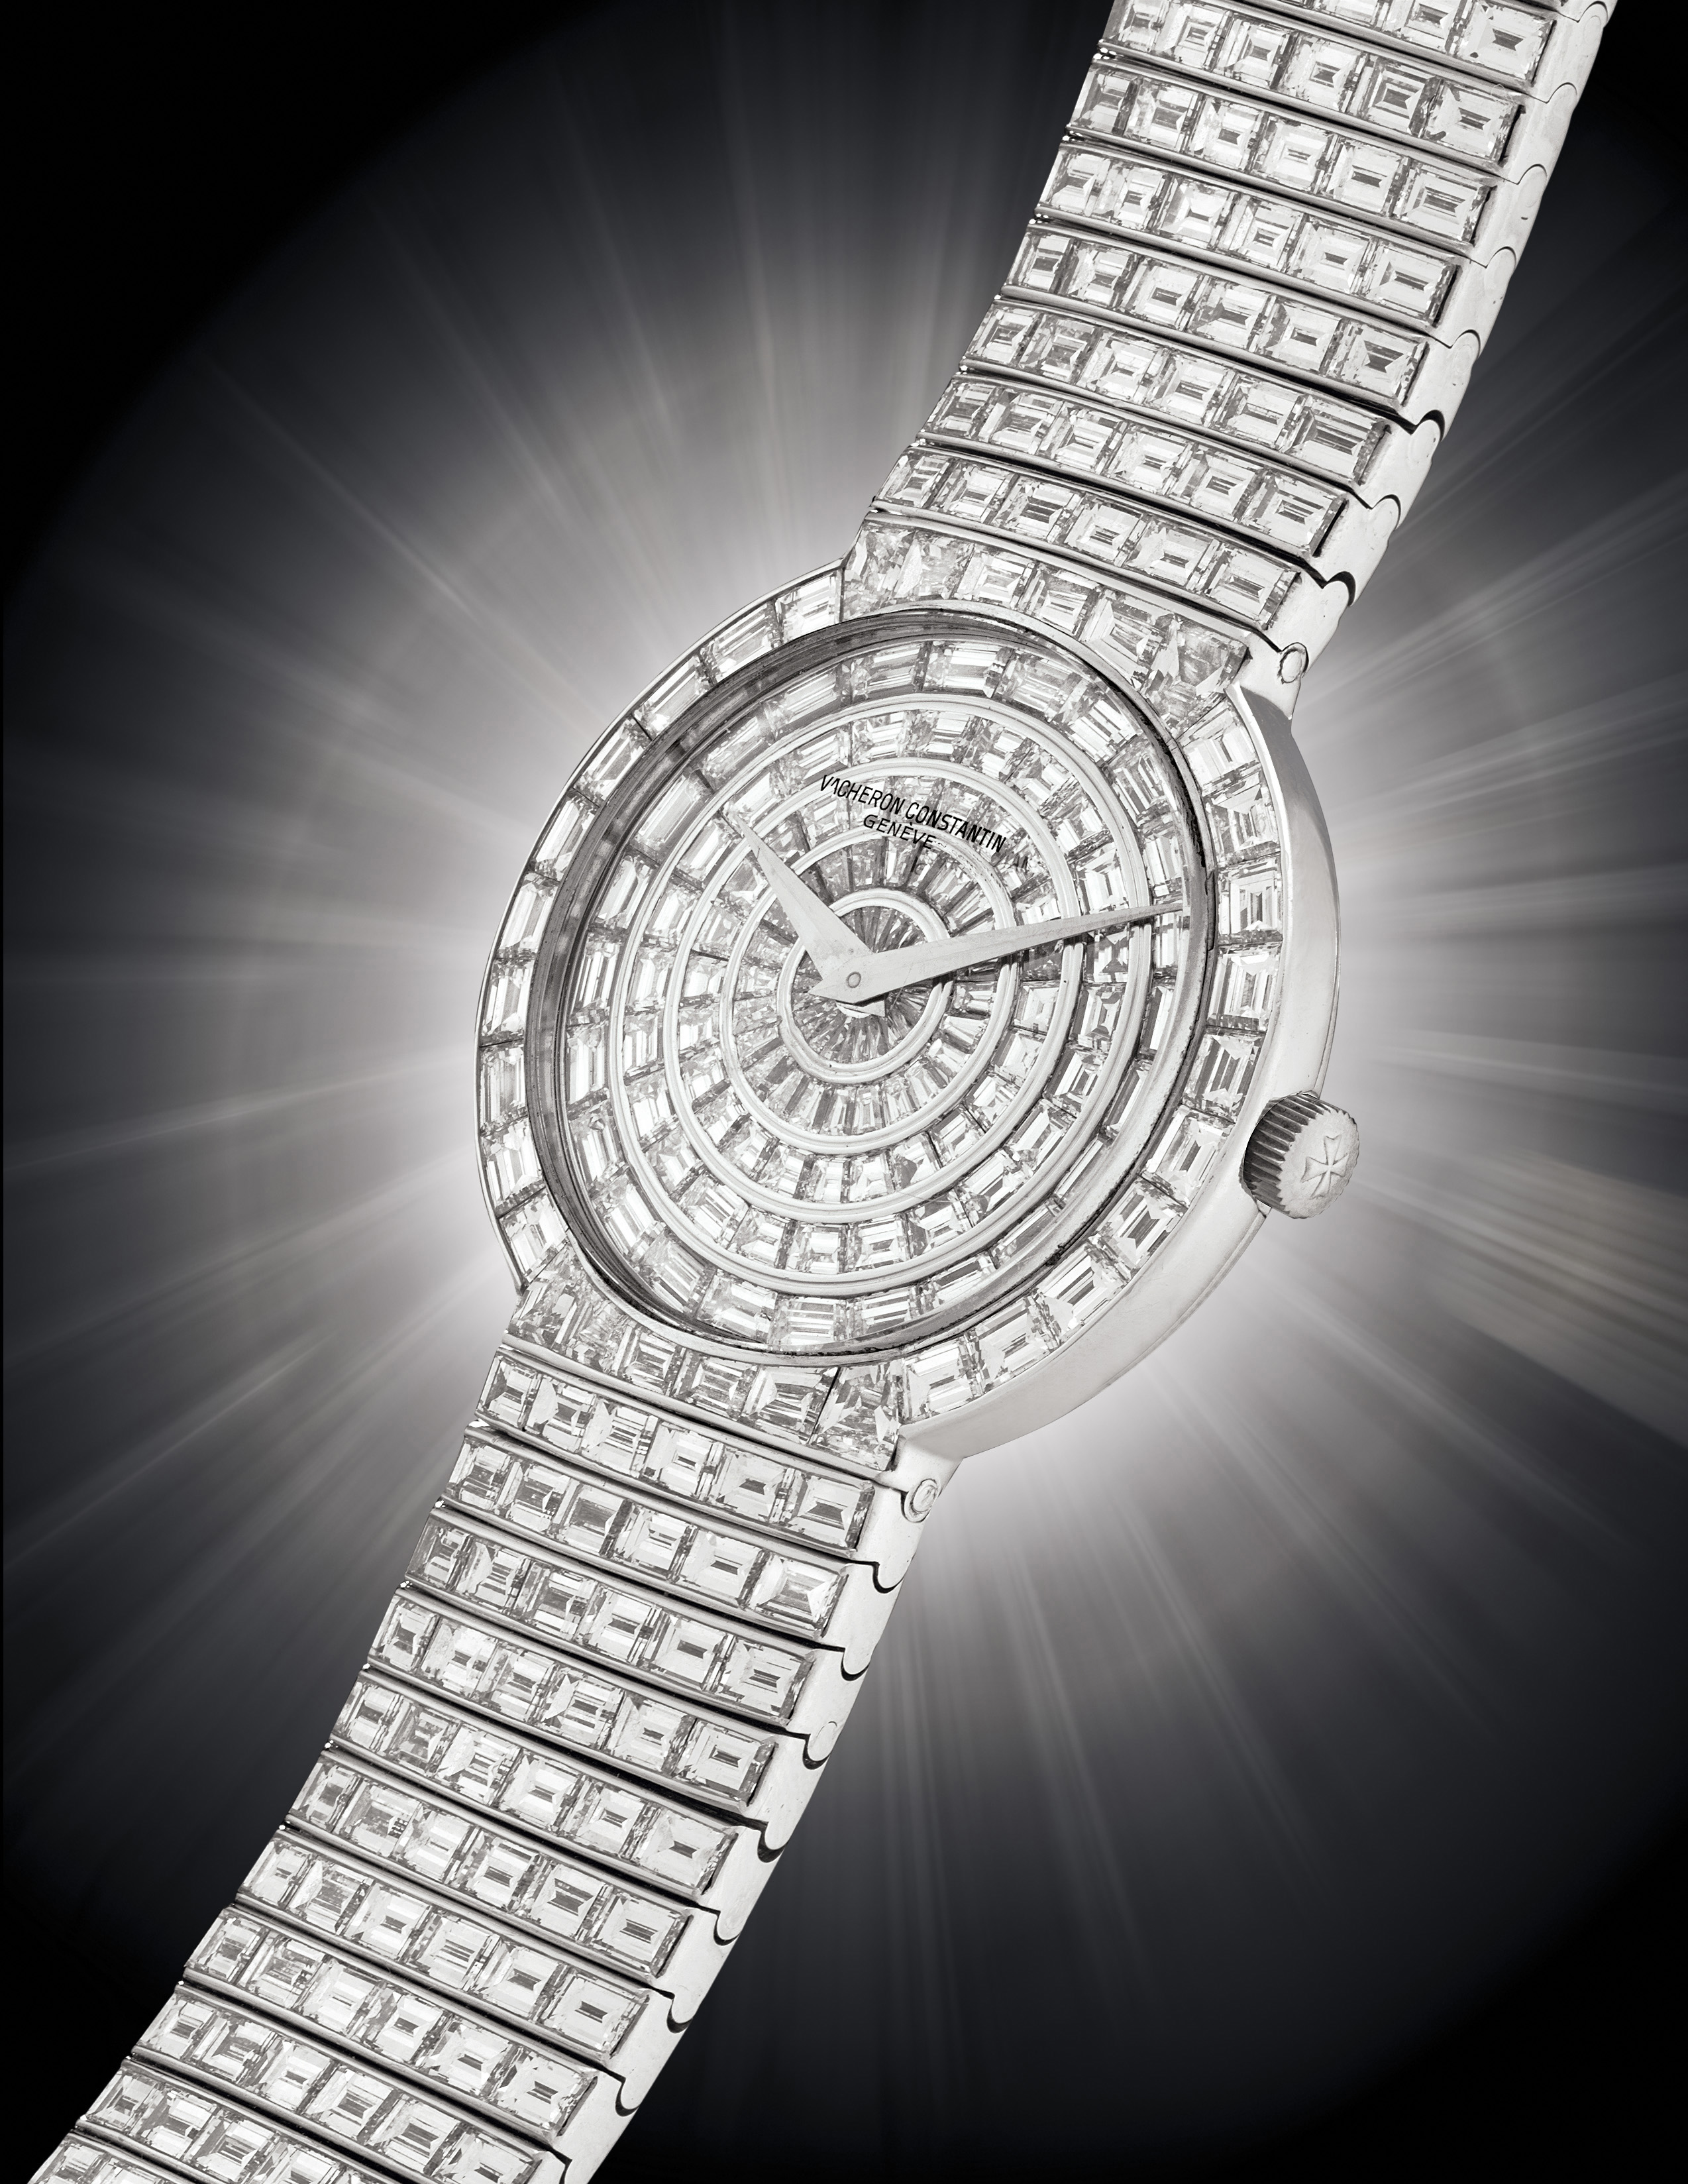 VACHERON CONSTANTIN. AN IMPRESSIVE 18K WHITE GOLD AND DIAMOND-SET WRISTWATCH WITH BRACELET